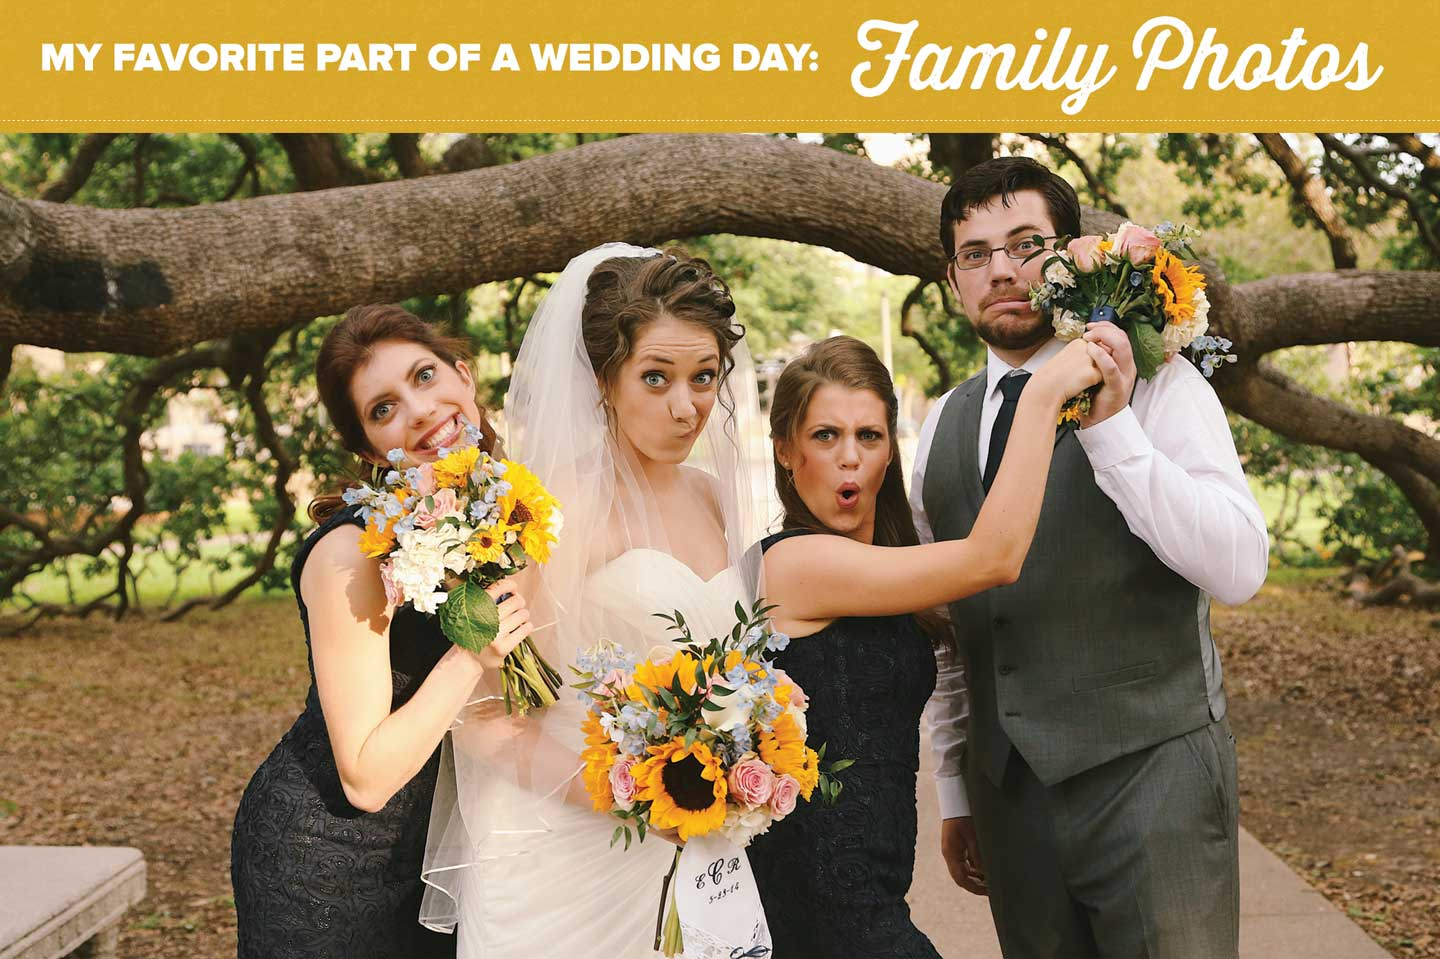 12666My Favorite Part Of A Wedding Day: Family Photos